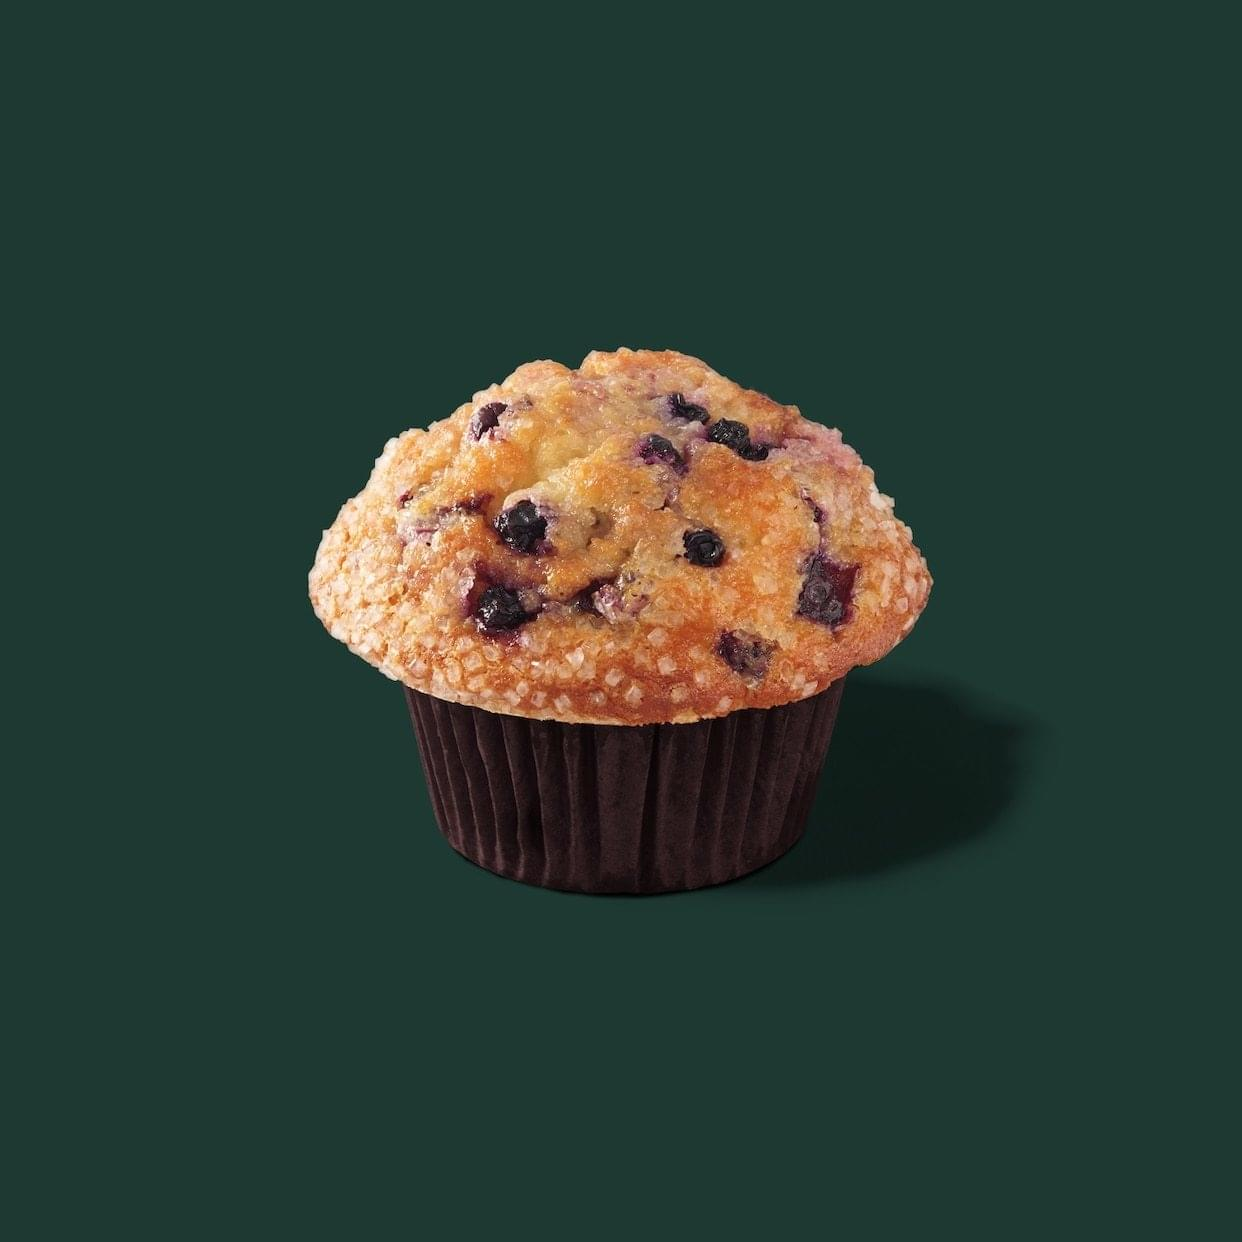 Starbucks Blueberry Muffin Nutrition Facts